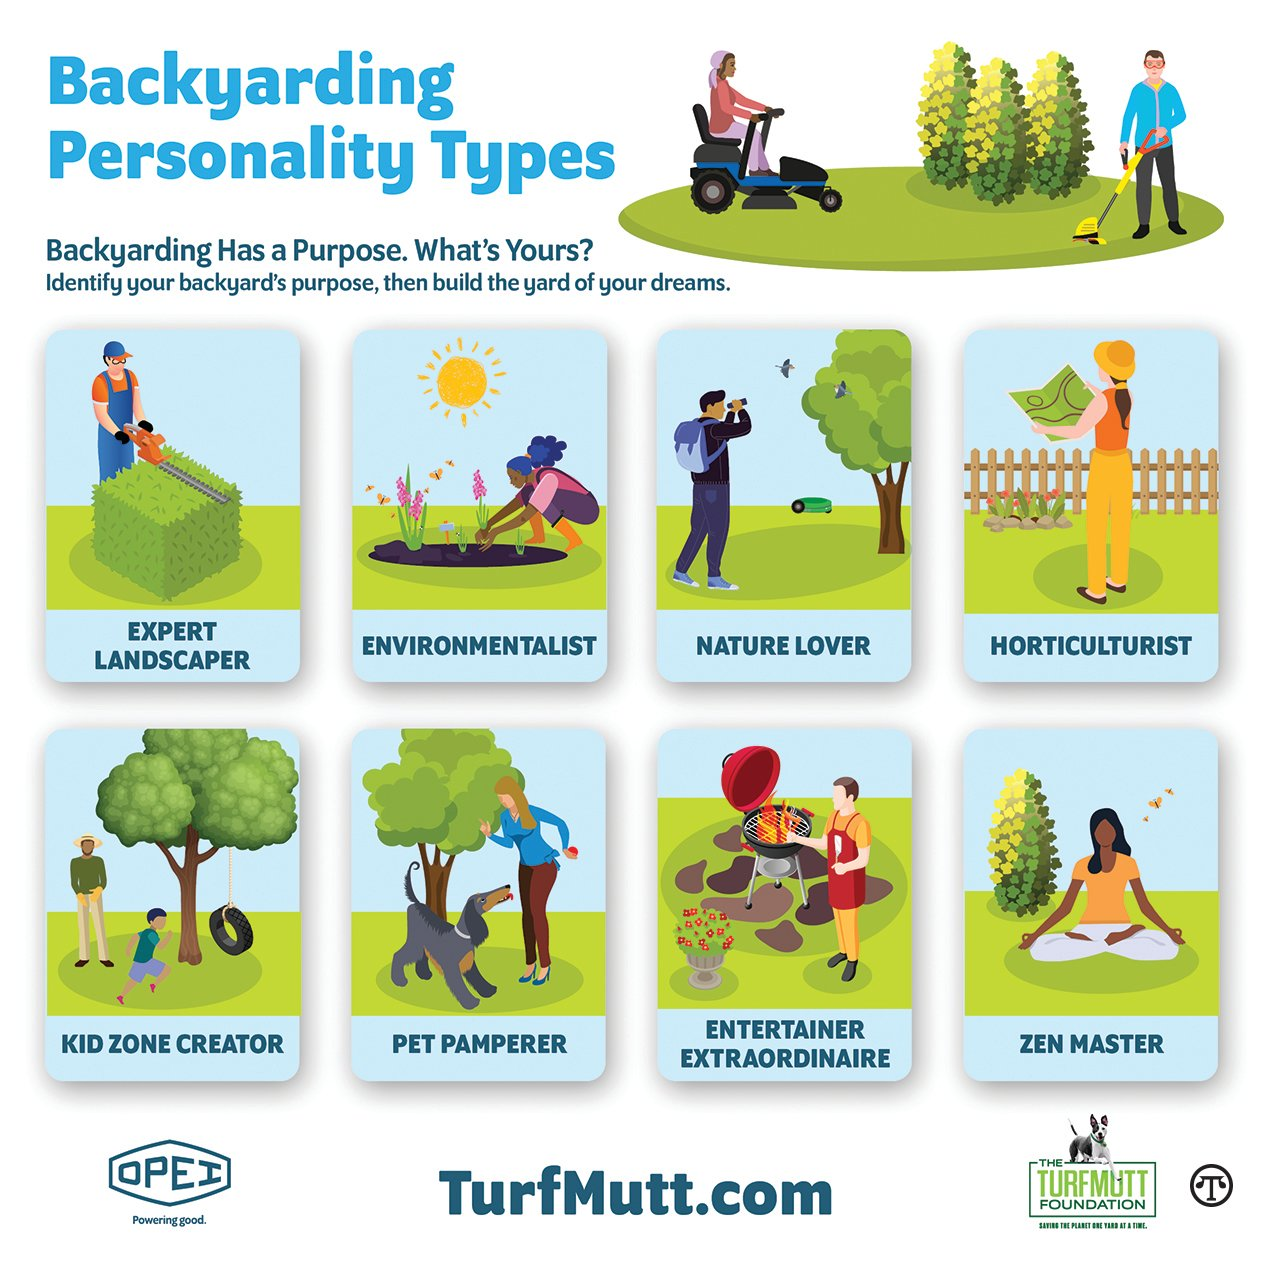 Backyarding With A Purpose:  Know Your Personality Type